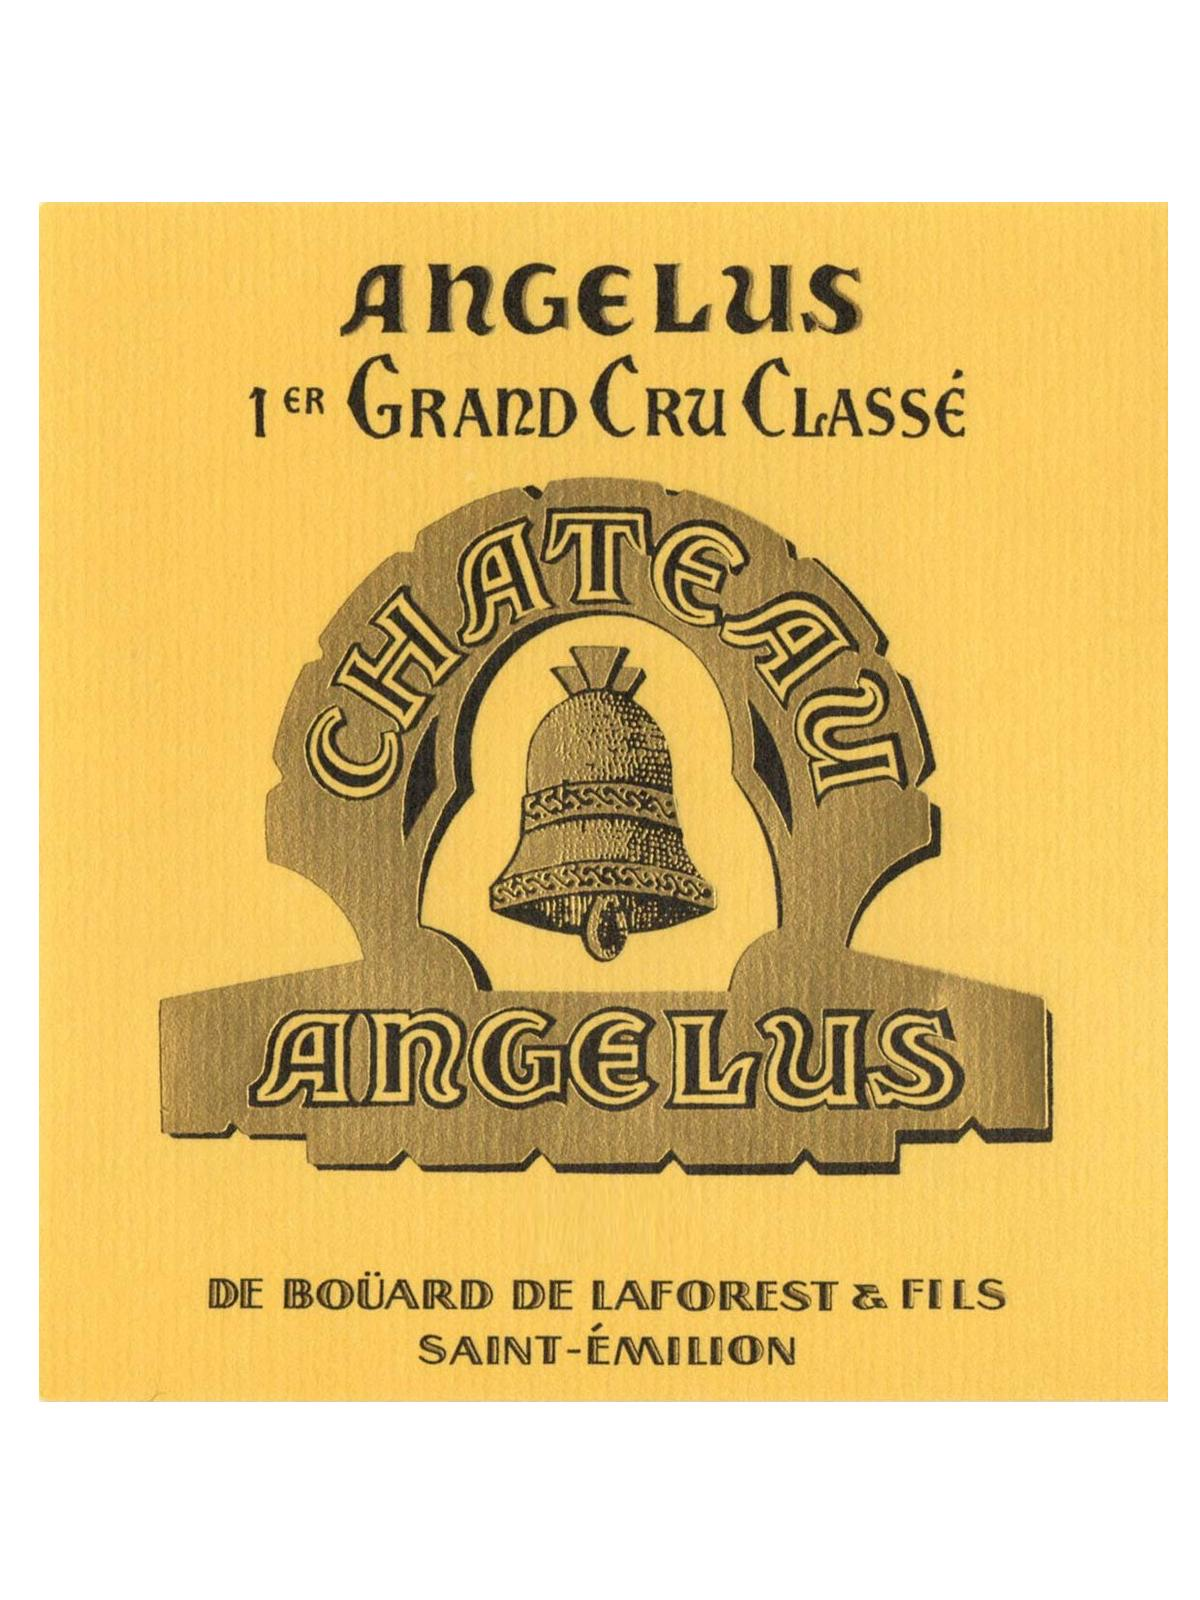 2004 ch teau ang lus saint emilion for Chateau angelus